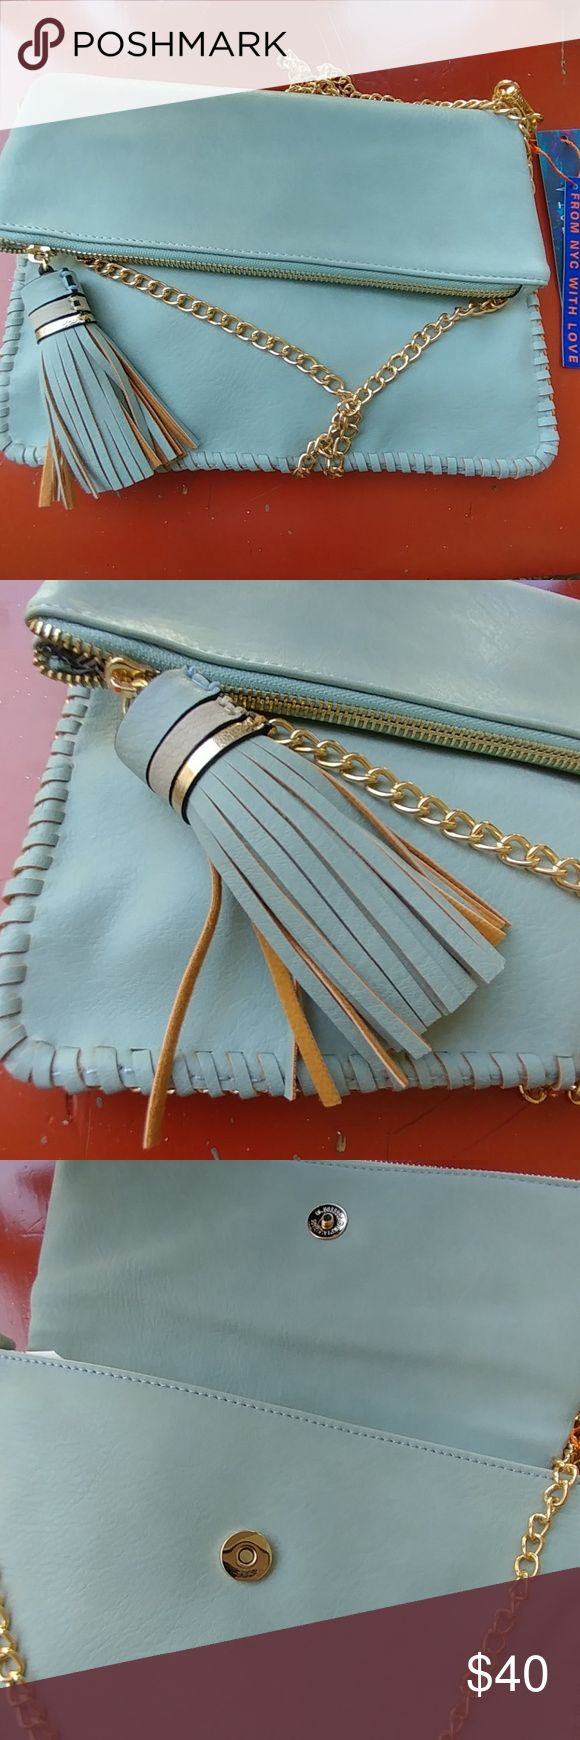 Tiffany blue crossbody bag Tassels,  golden  hardware,  makes this amazing bag perfect for spring.  Chain is removable, so you can wear it as clutch for a more put together look.  Vegan Made in USA  11 WIDE 9 HIGHT  SHOULDER DOWN 22 INCHES Bags Crossbody Bags